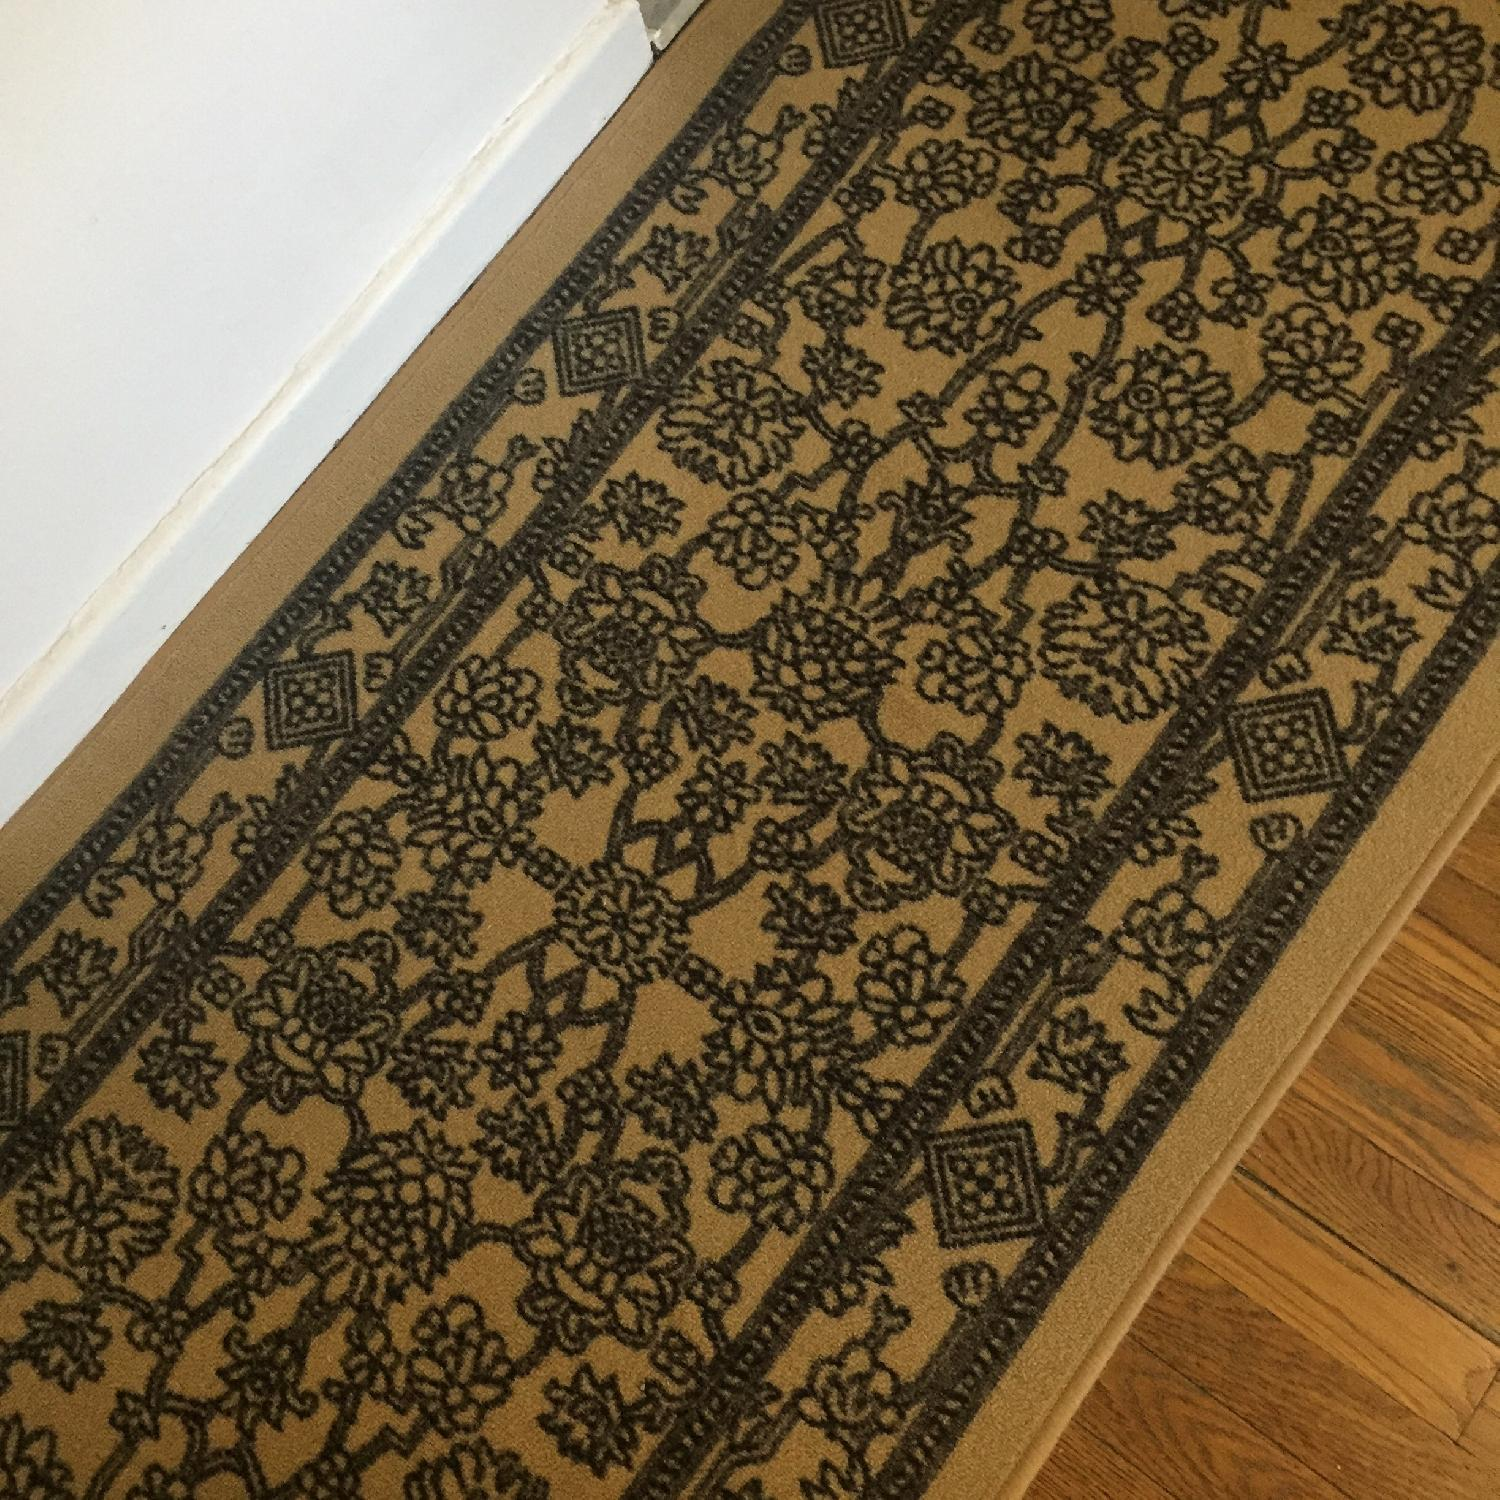 Low Pile Rubber Backed Runner Rug - image-3